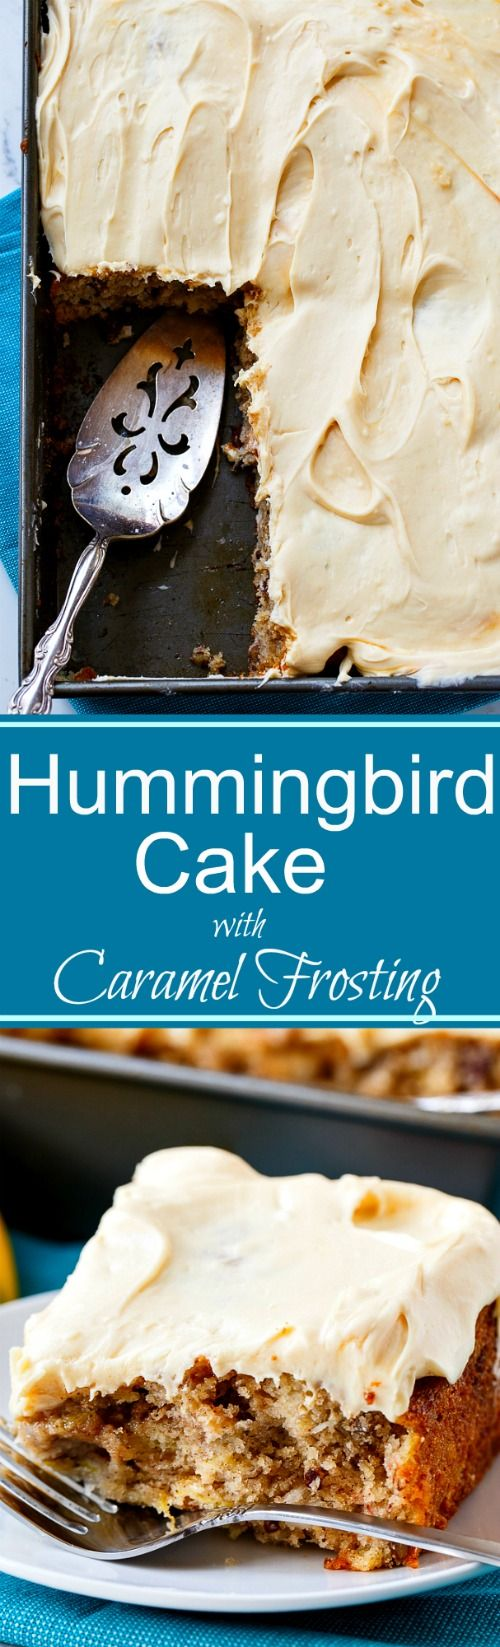 Hummingbird Cake with Caramel Frosting